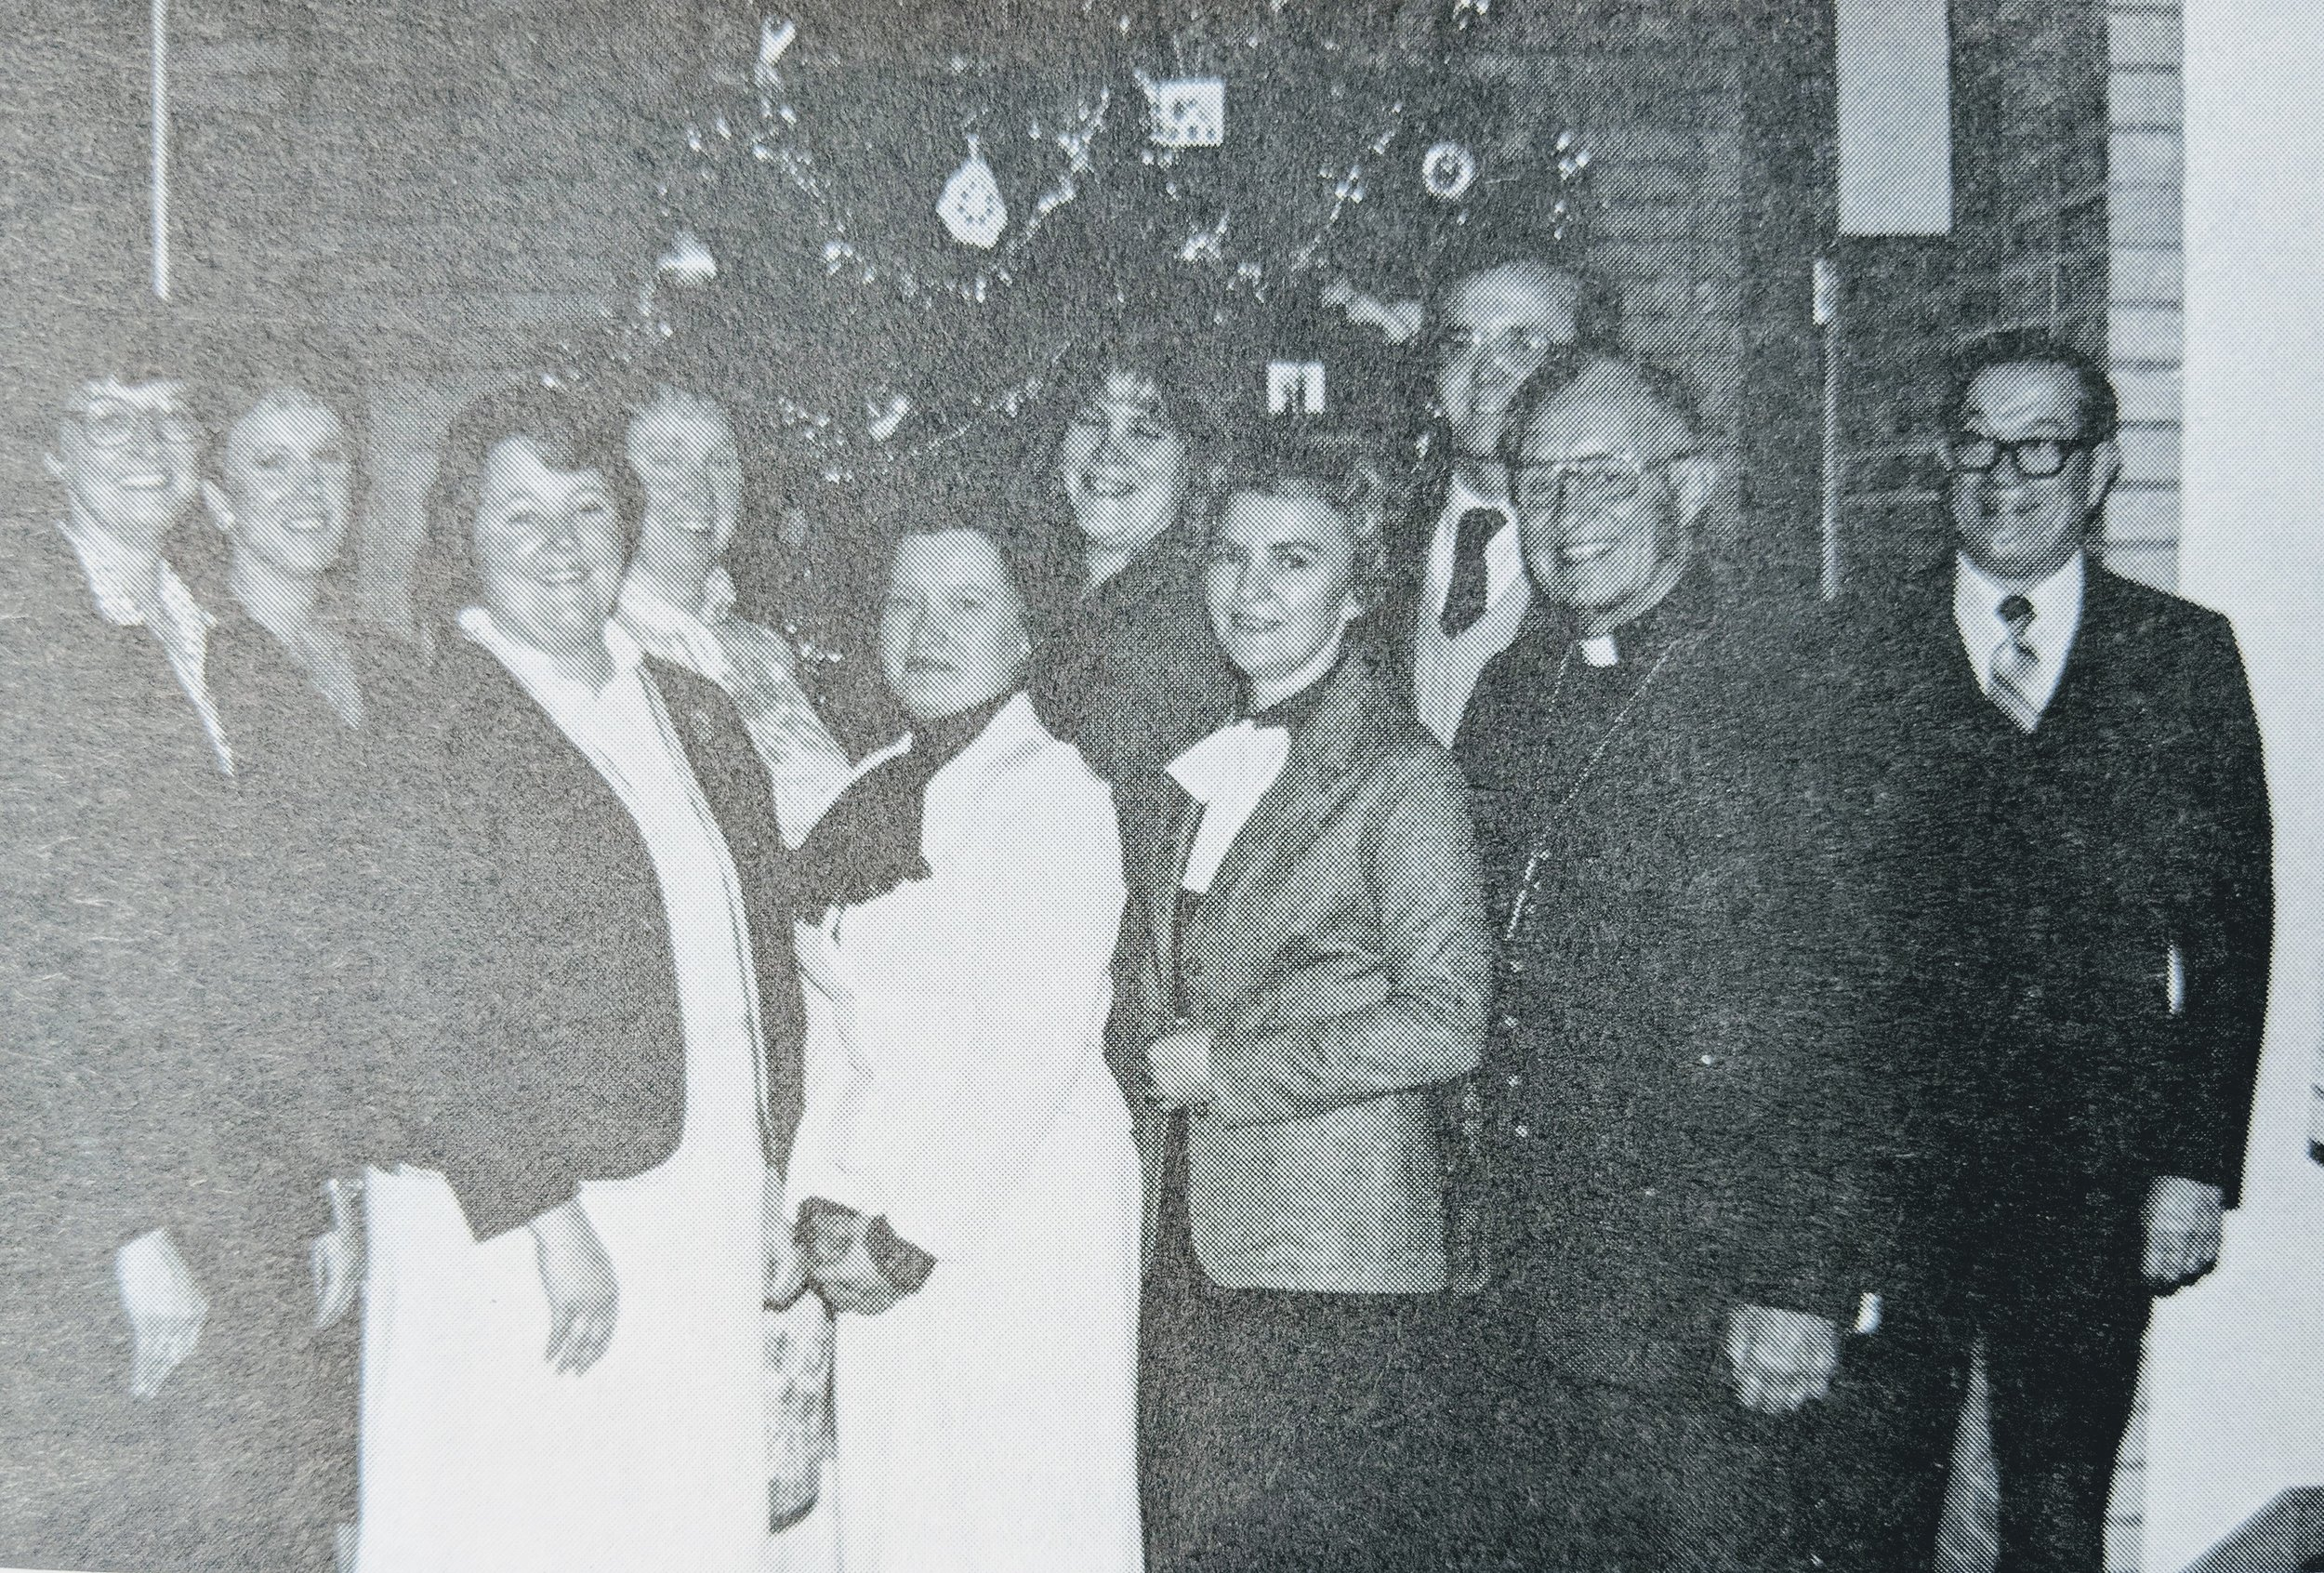 Sunday School Teachers - December 1984